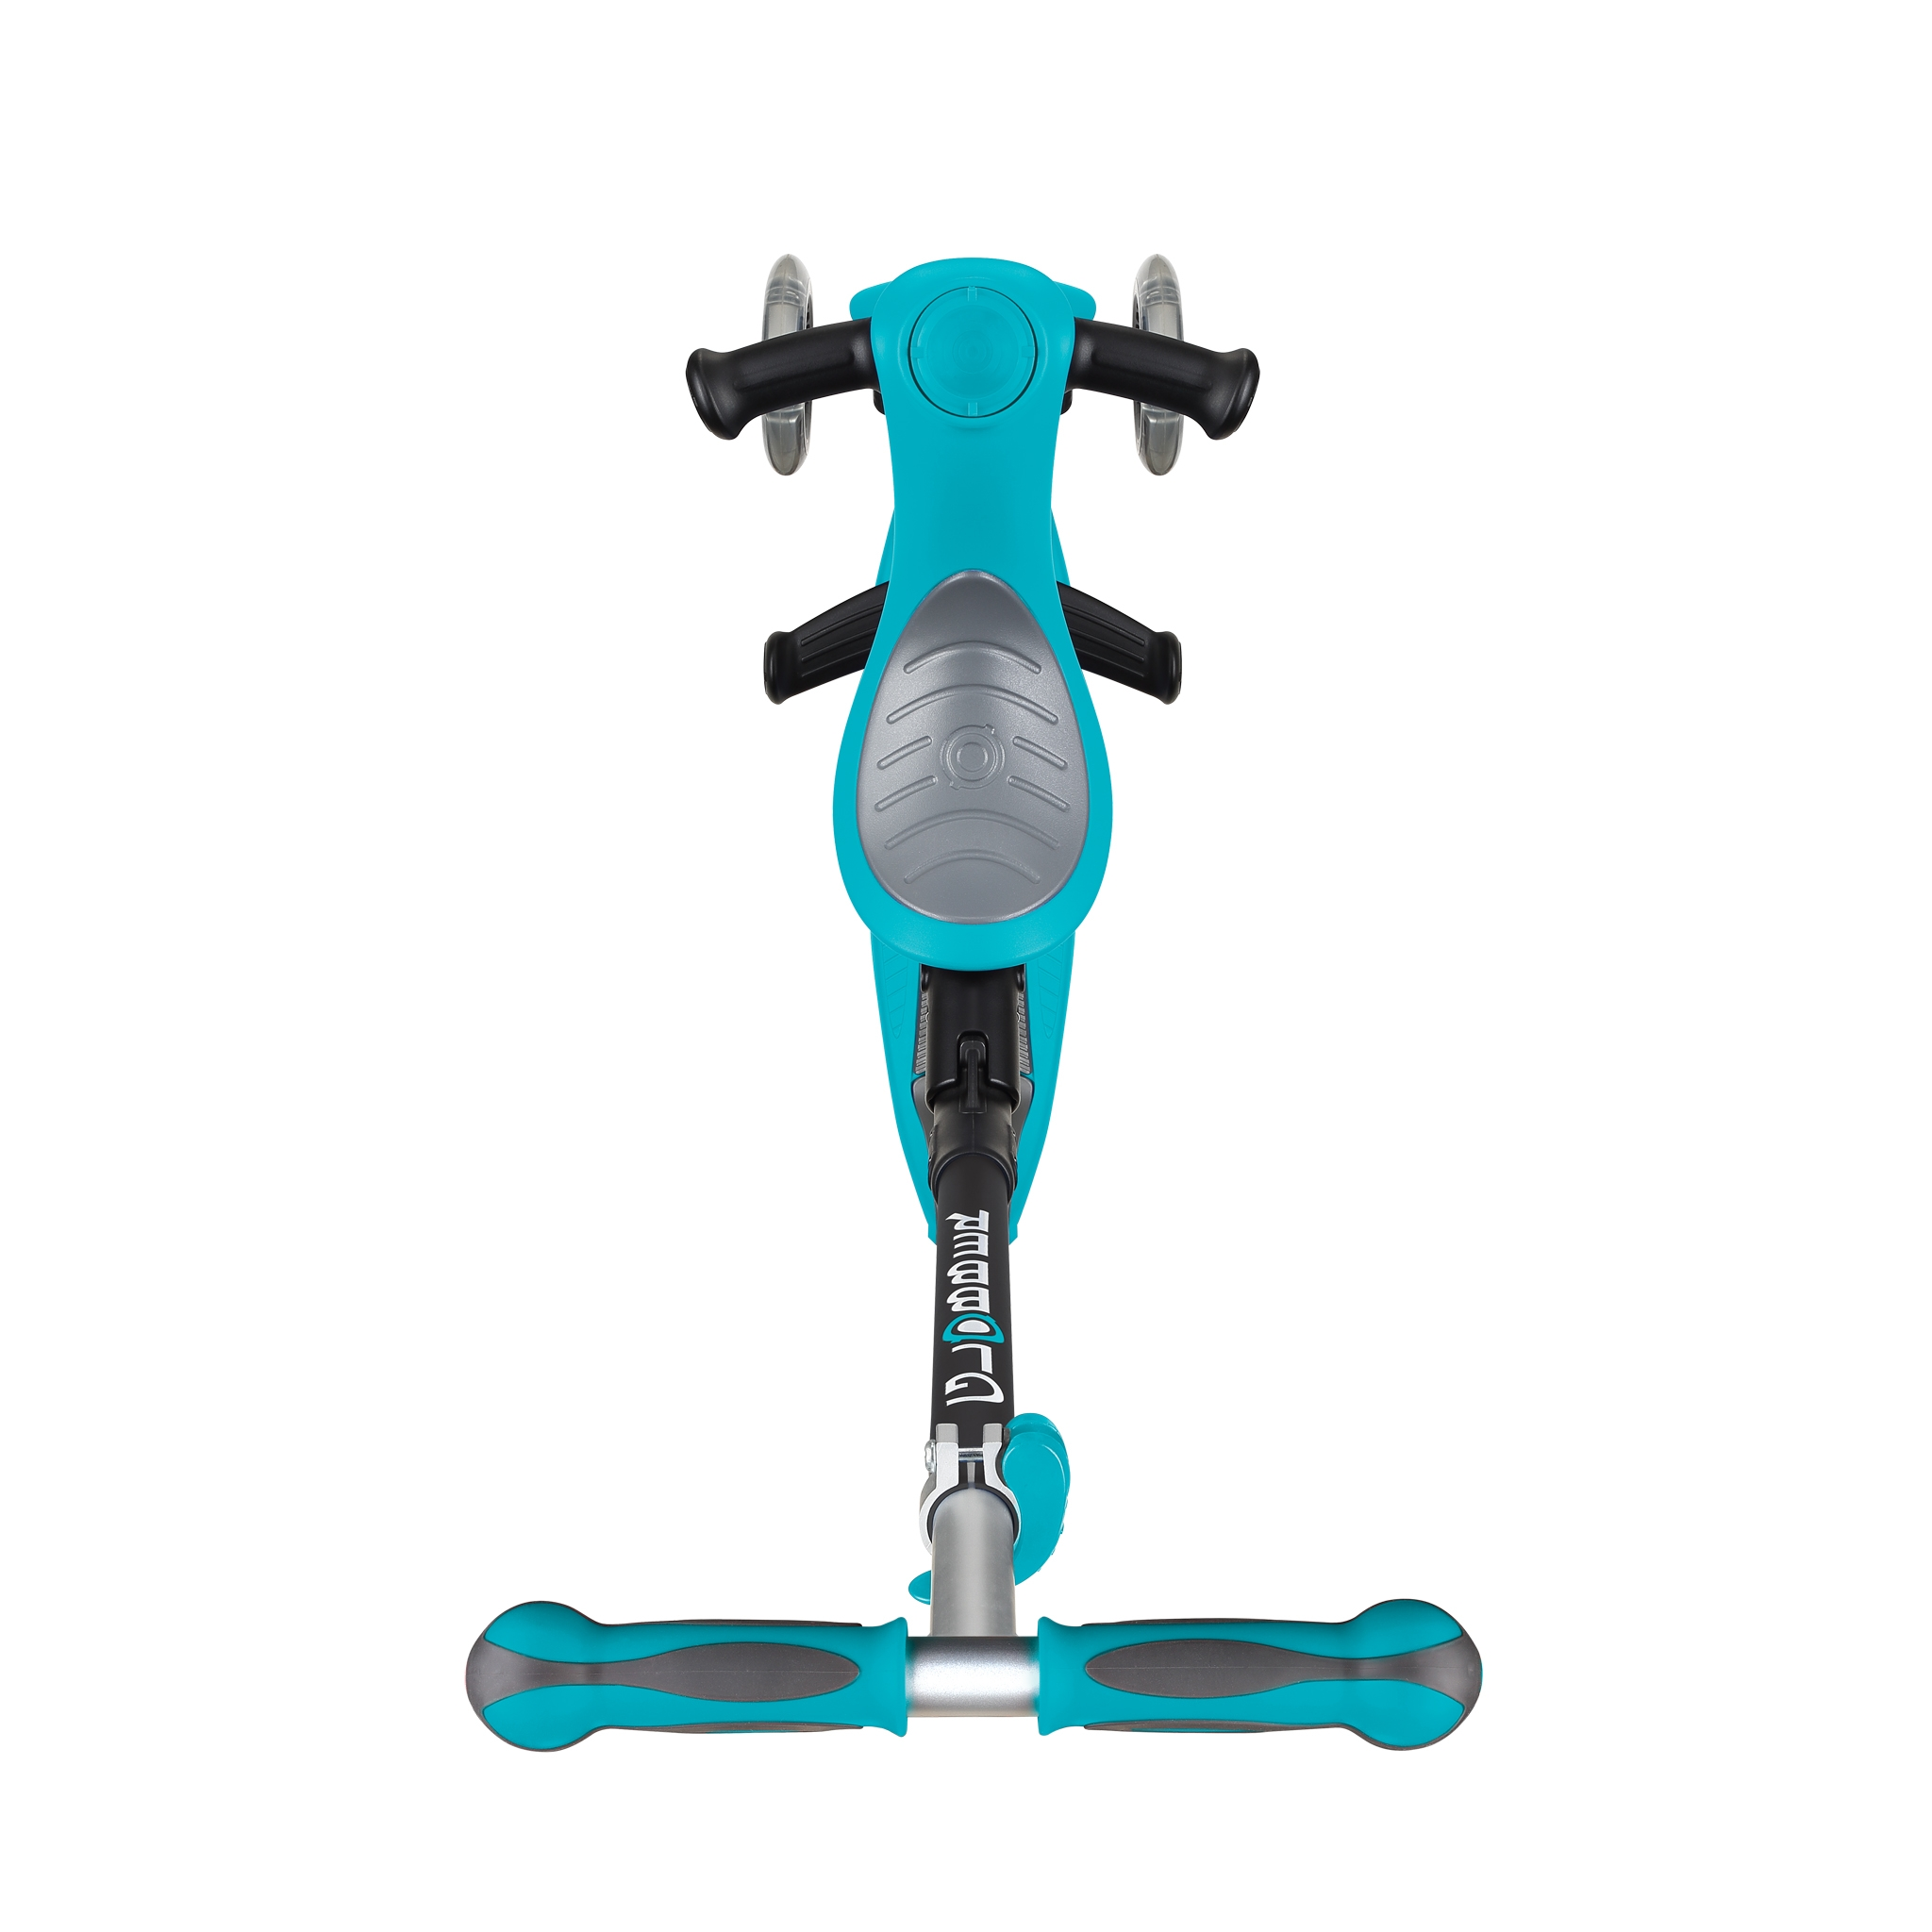 GO-UP-DELUXE-ride-on-walking-bike-scooter-with-extra-wide-3-height-adjustable-seat-teal 2